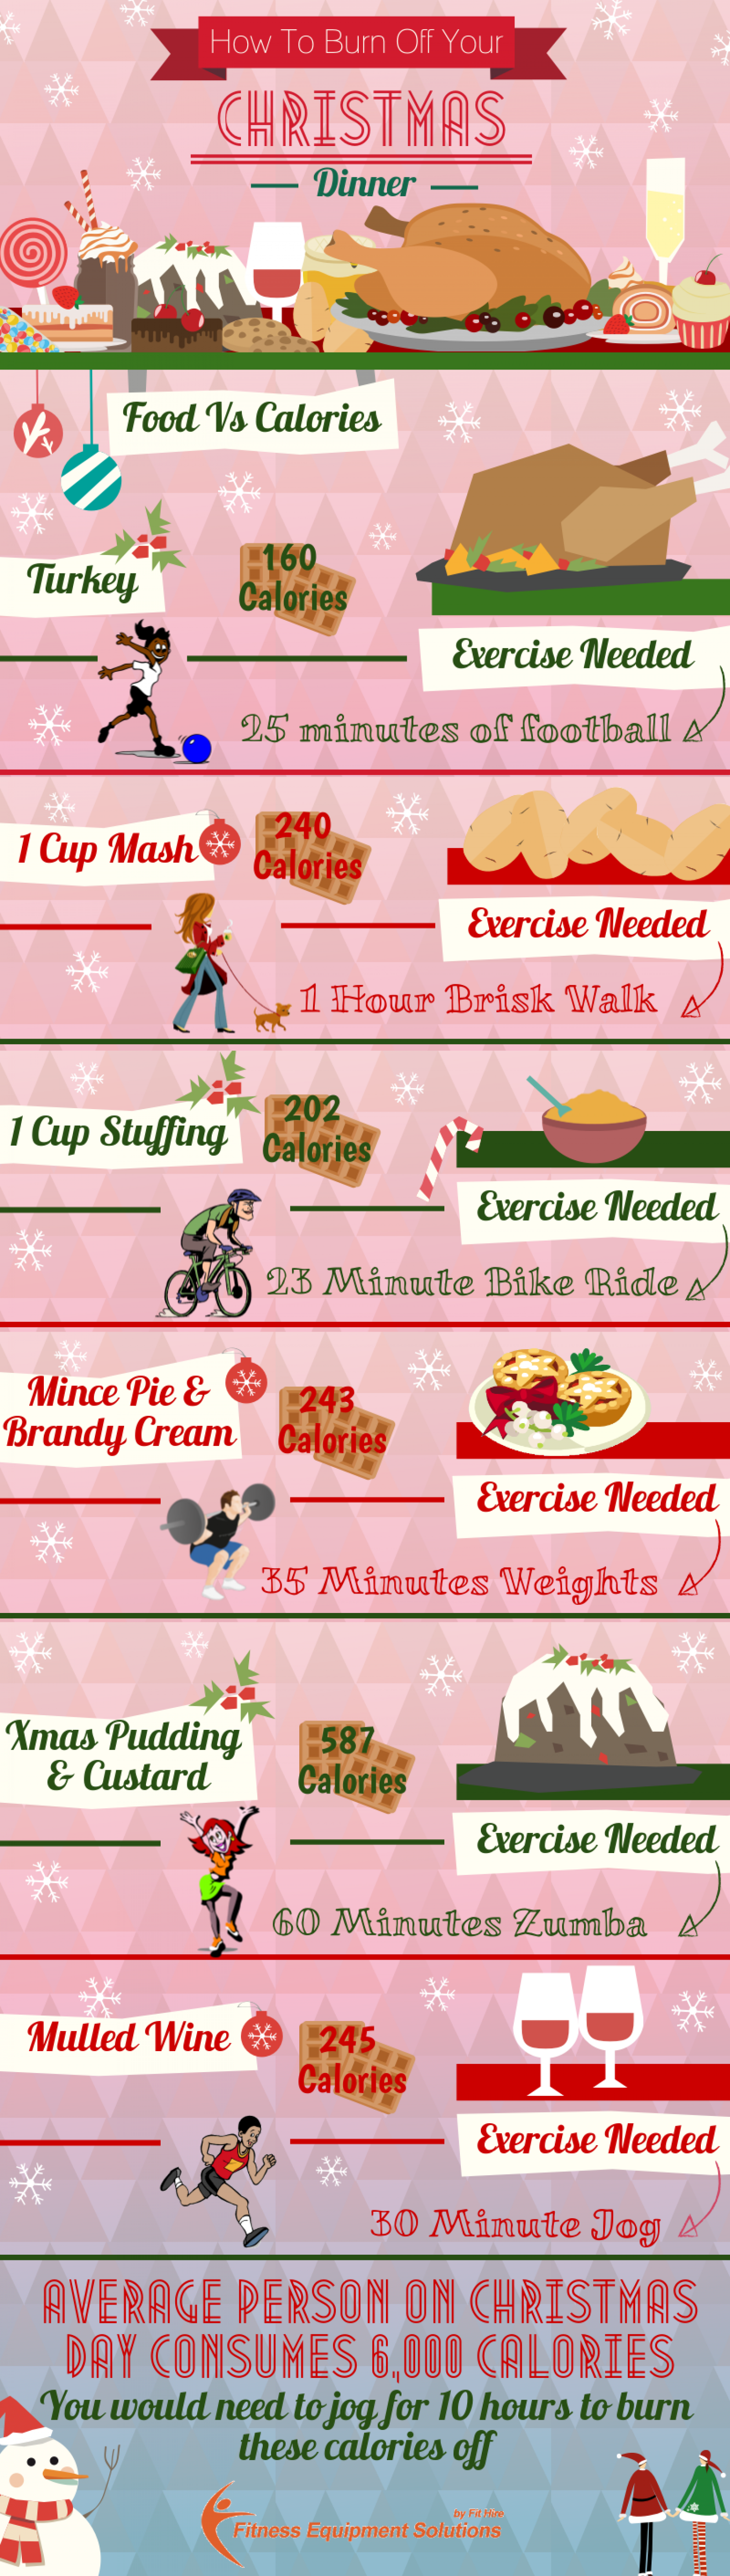 How to Burn Off Your Christmas Dinner